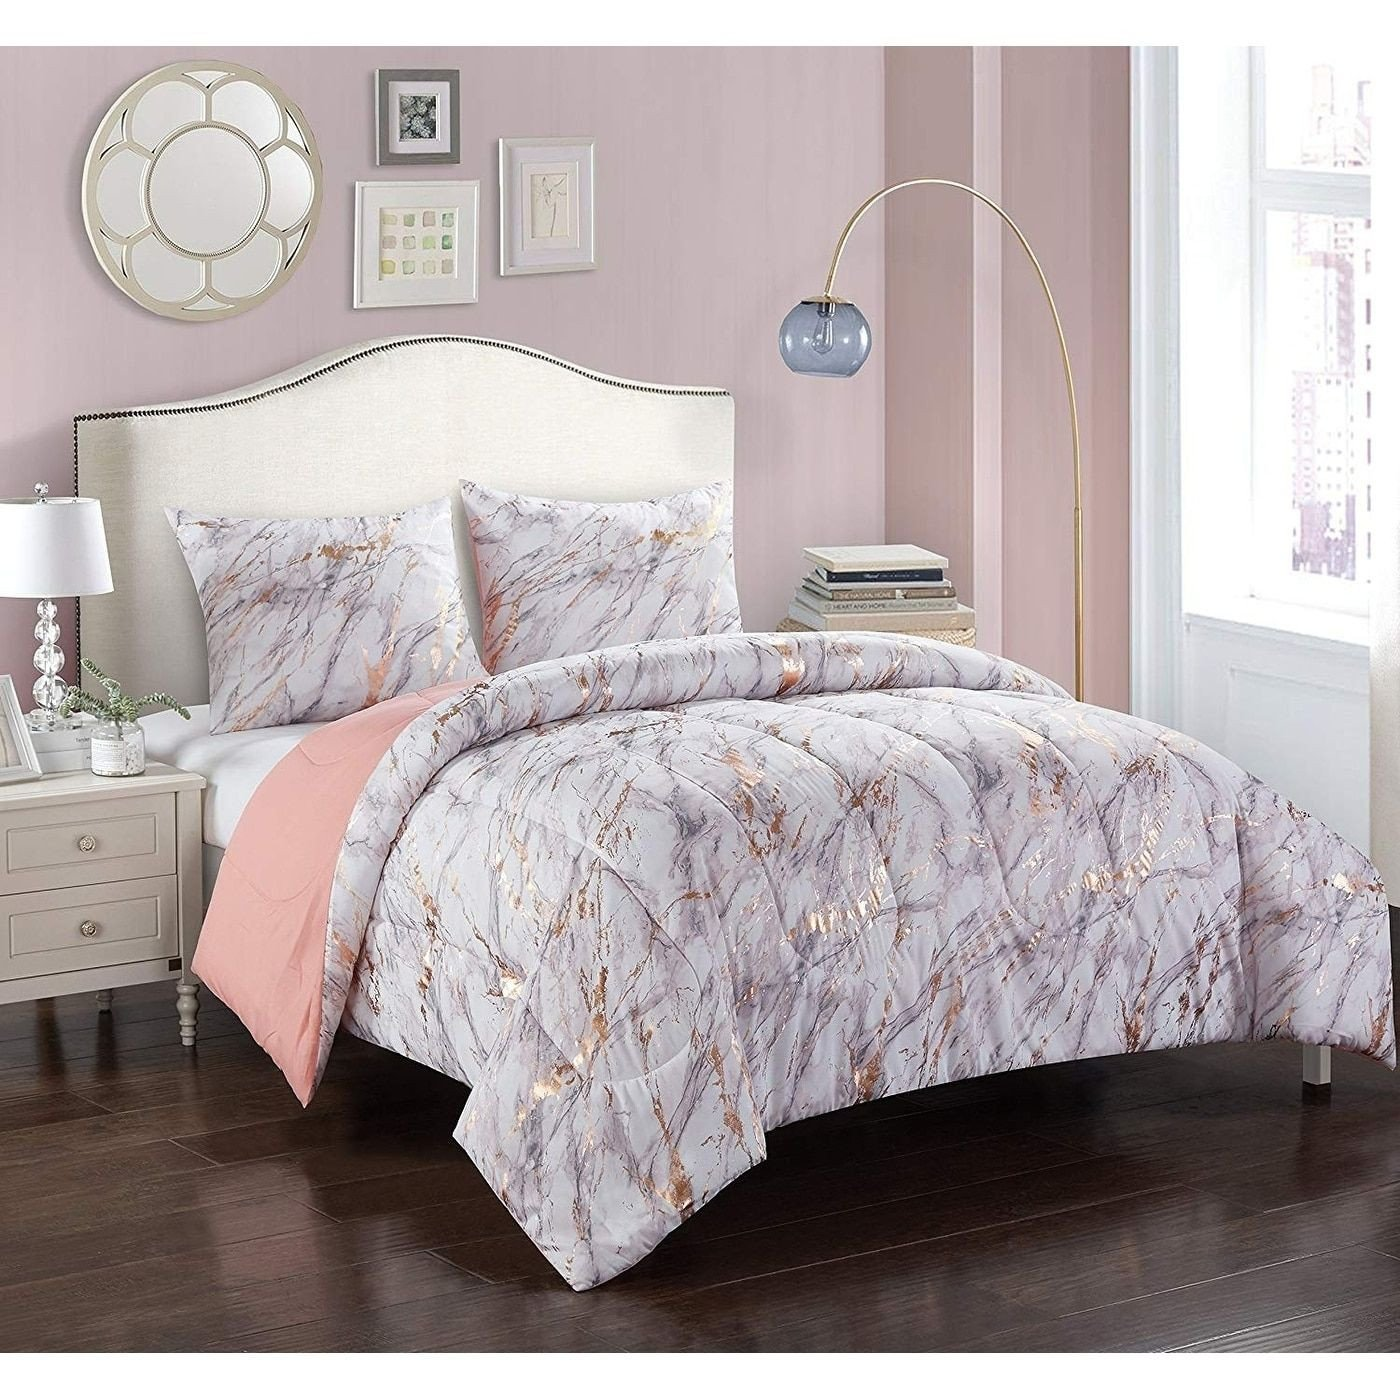 Pink and Gold Bedroom Set Unique Rose Gold and Marble forter Set Twin Pink Pop Shop